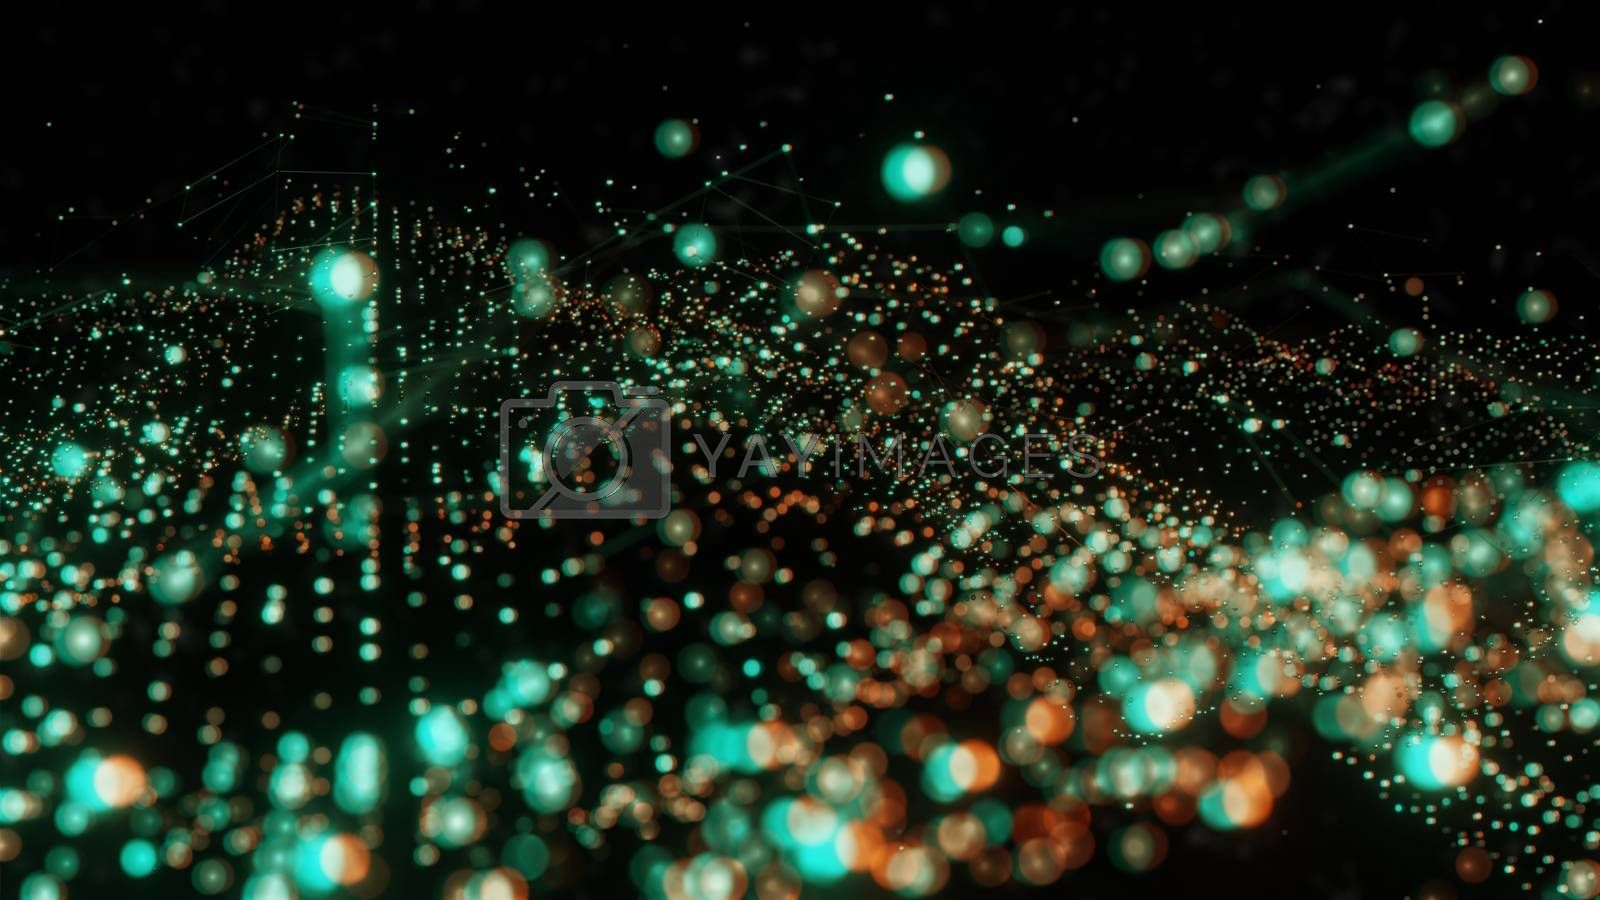 Plexus of abstract orange and green dots on a black background. Loop animations. 3D illustration